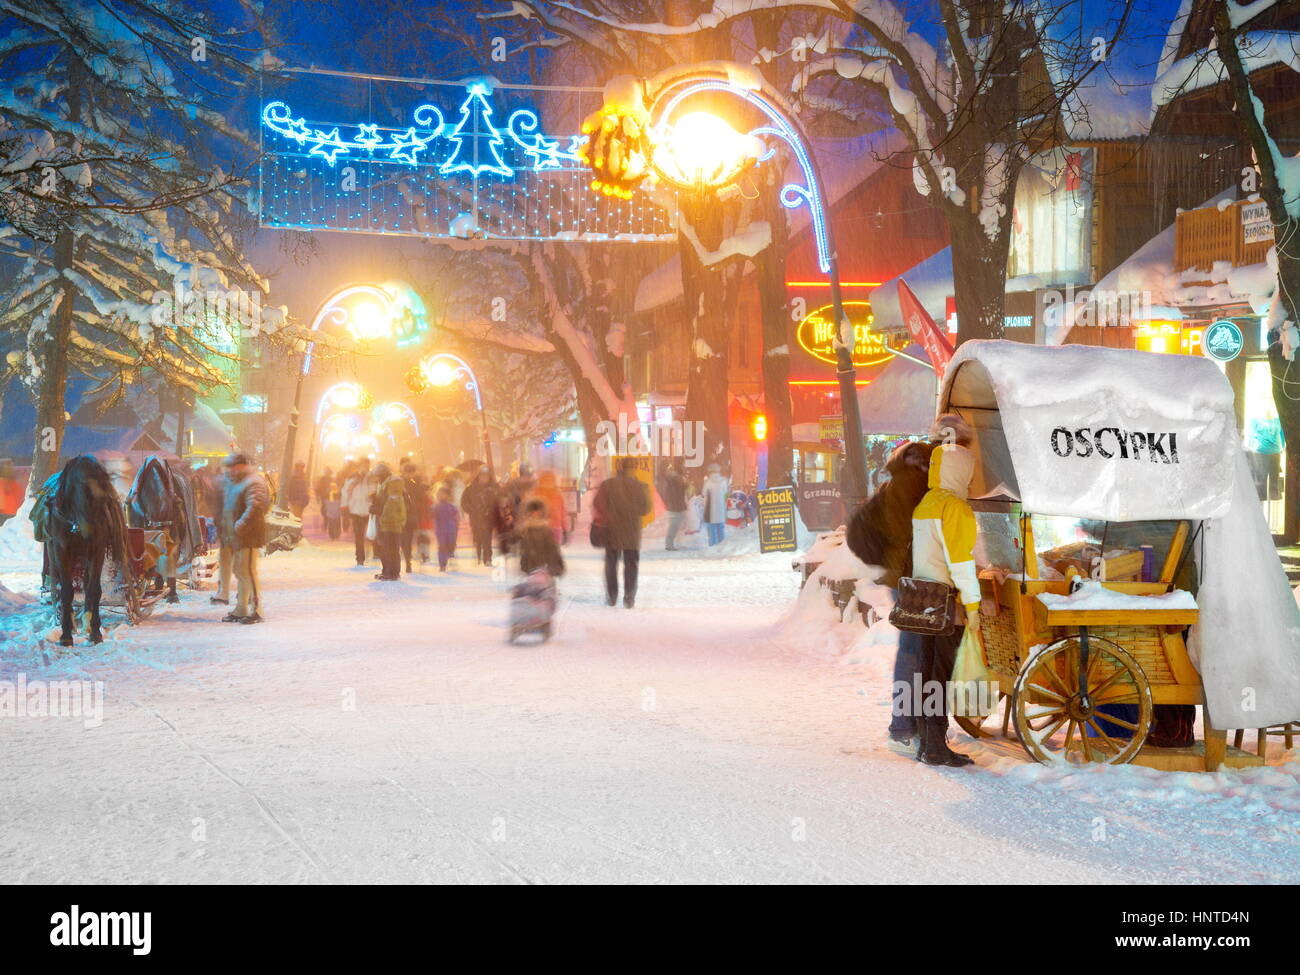 Winter snow city at Christmas Time in Zakopane, Poland - Stock Image